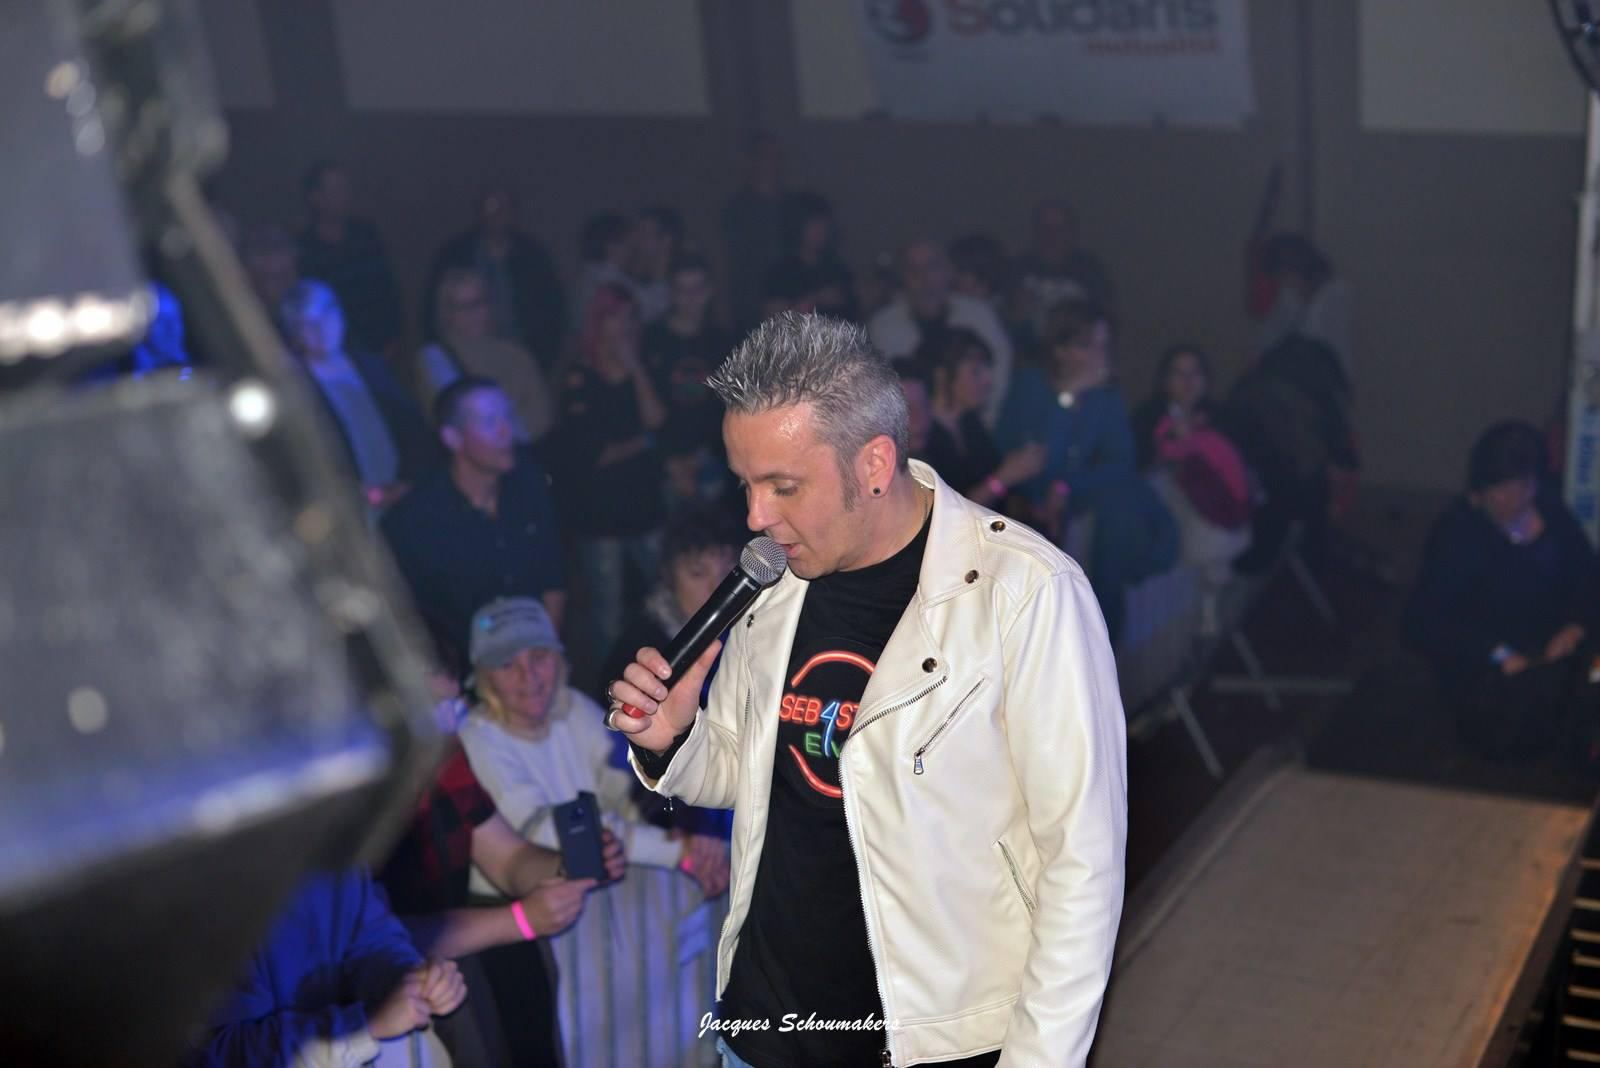 sebastian-for-elvis-solidartist-legend-festival-2017-vottem-facebook-10